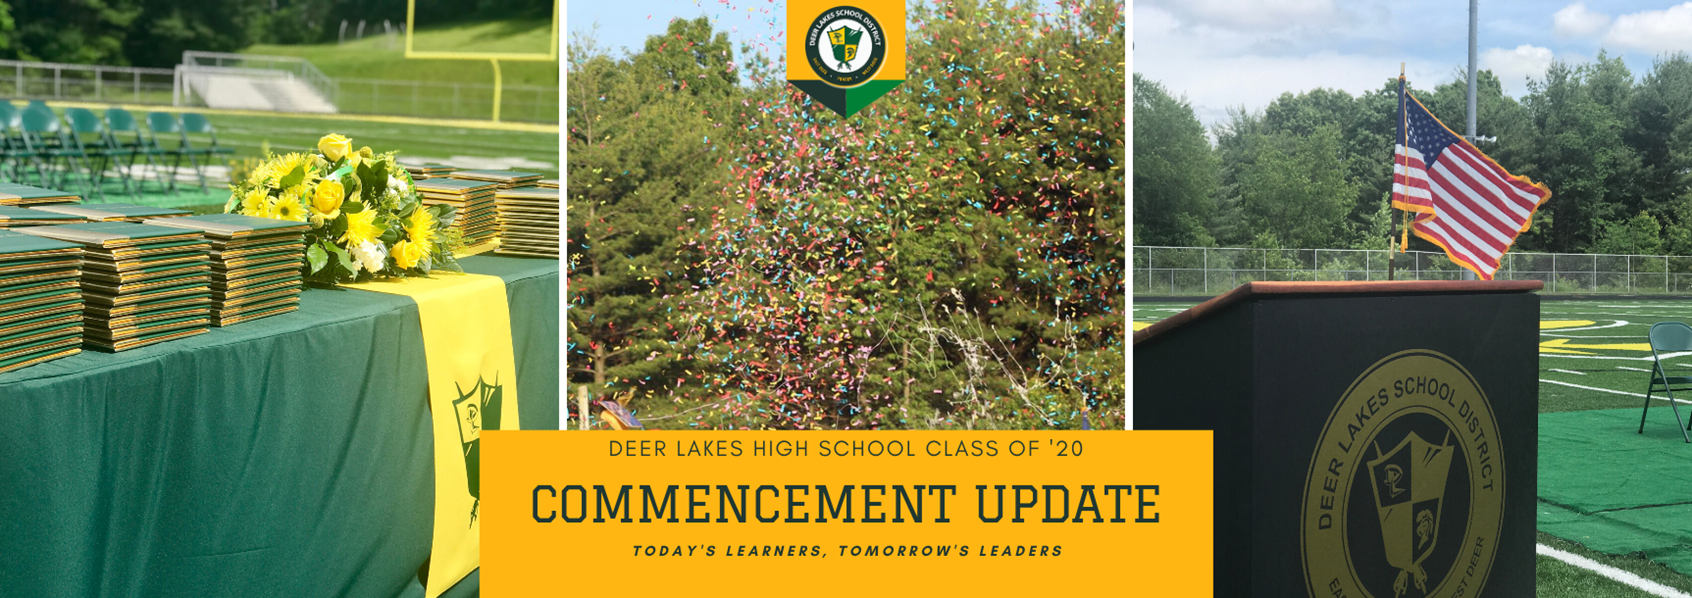 Commencement 2020 Update